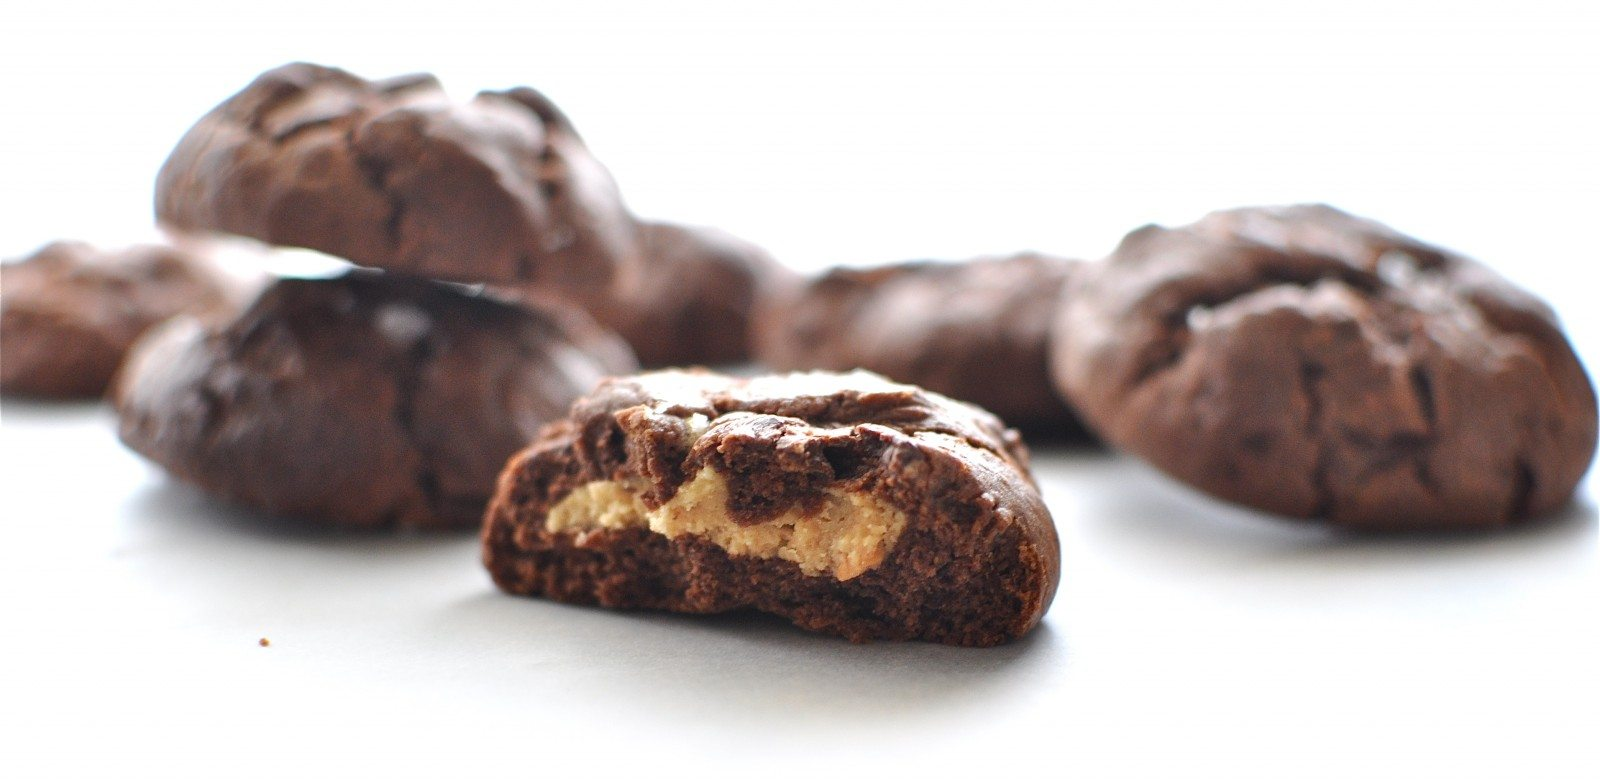 Double chocolate peanut butter biscuits